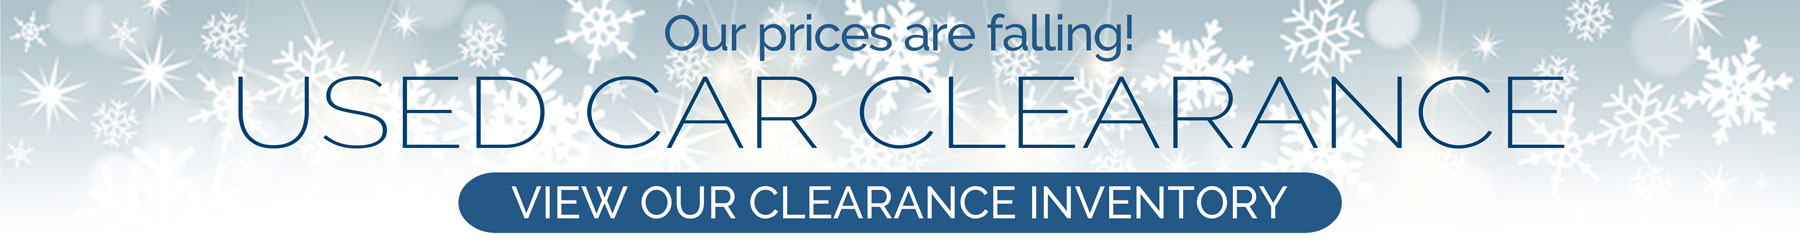 WINTER-CLEARANCE-BANNER-W-BUTTON